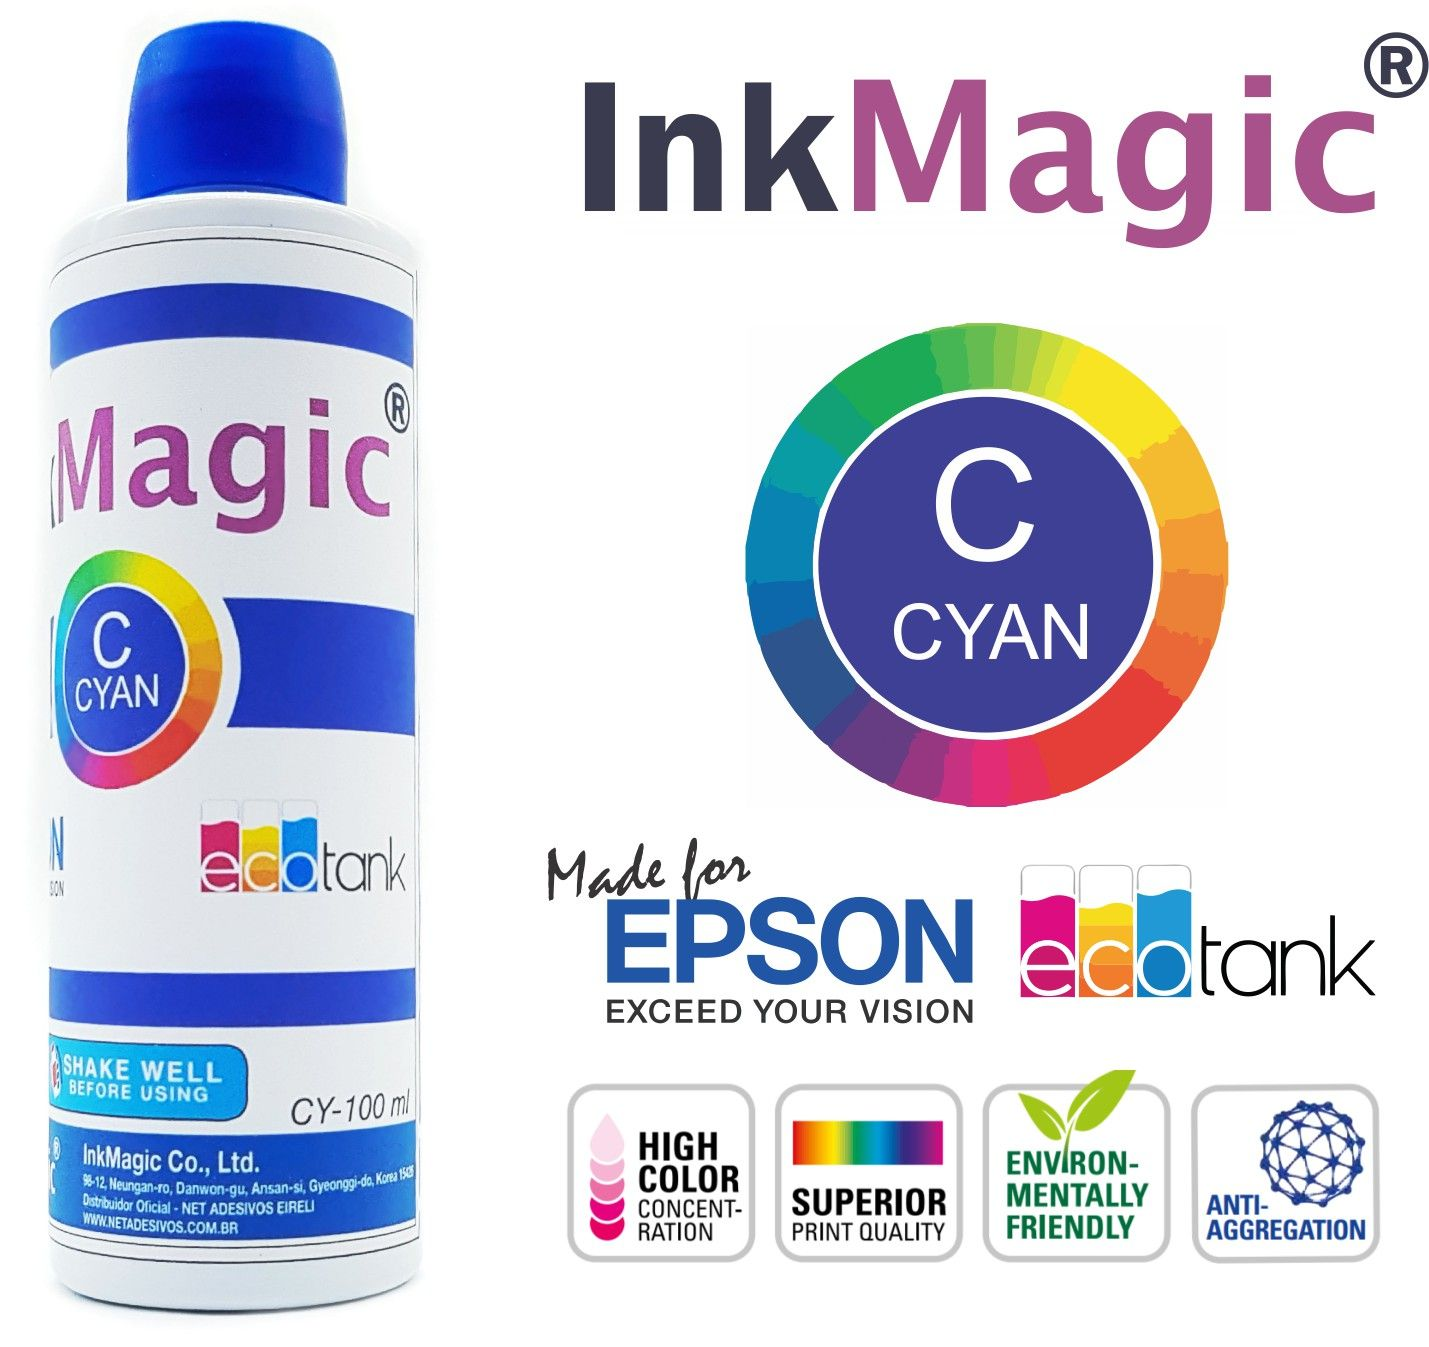 Tinta Sublimática InkMagic 500ml + 300 Papel Sublimático A4 + Icc